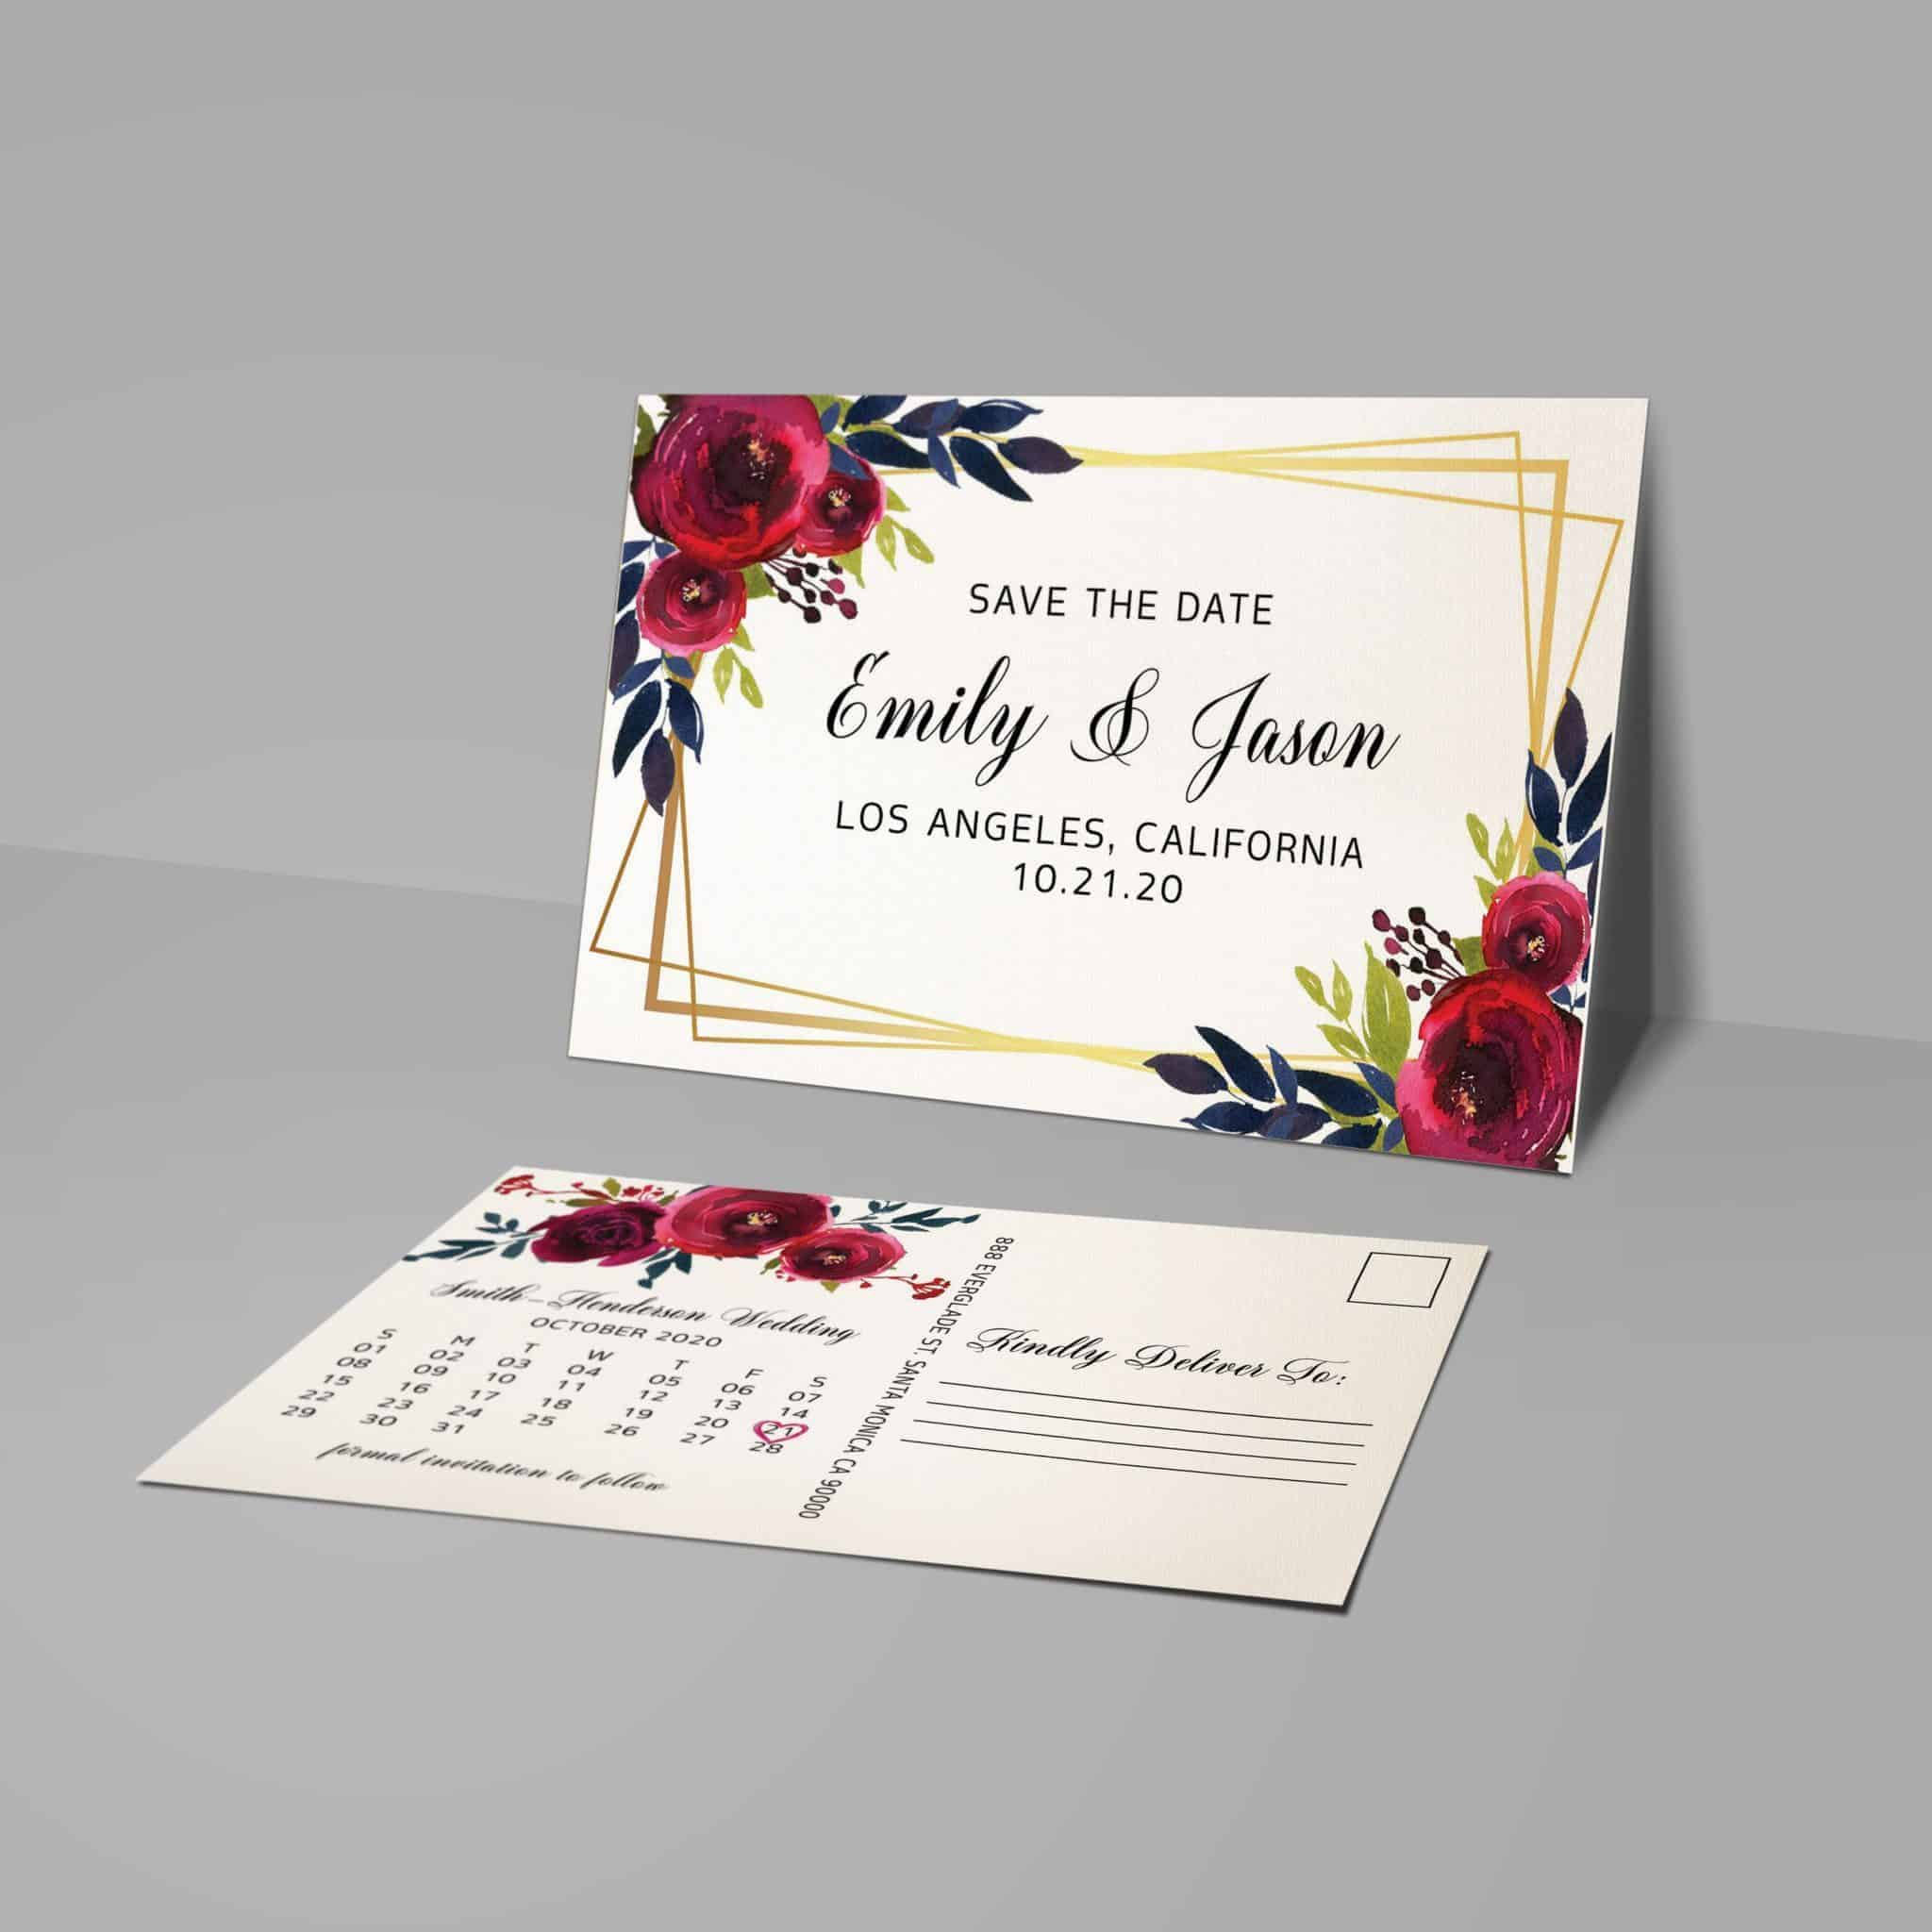 Floral Frame Save the Dates, Wedding Save the Date Postcards, Announcement for Friends Save the Date Cards, Calendar Save the Date